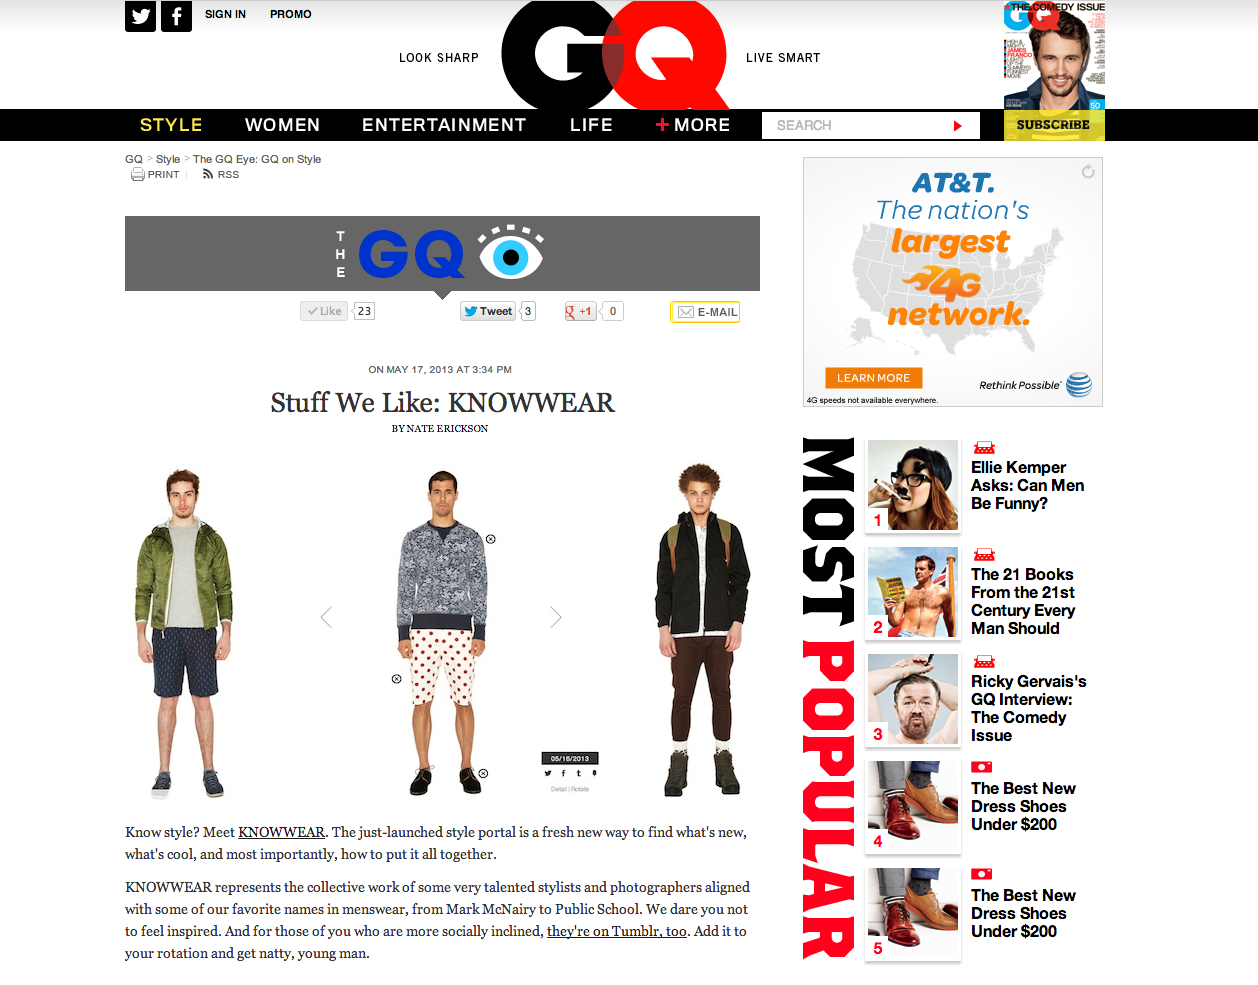 KNOWWEARfeatured on the GQ eye - www.gq.com/style/blogs/the-gq-eye/2013/05/stuff-we-like-knowwear.html?mbid=social_twitter_gqfashion